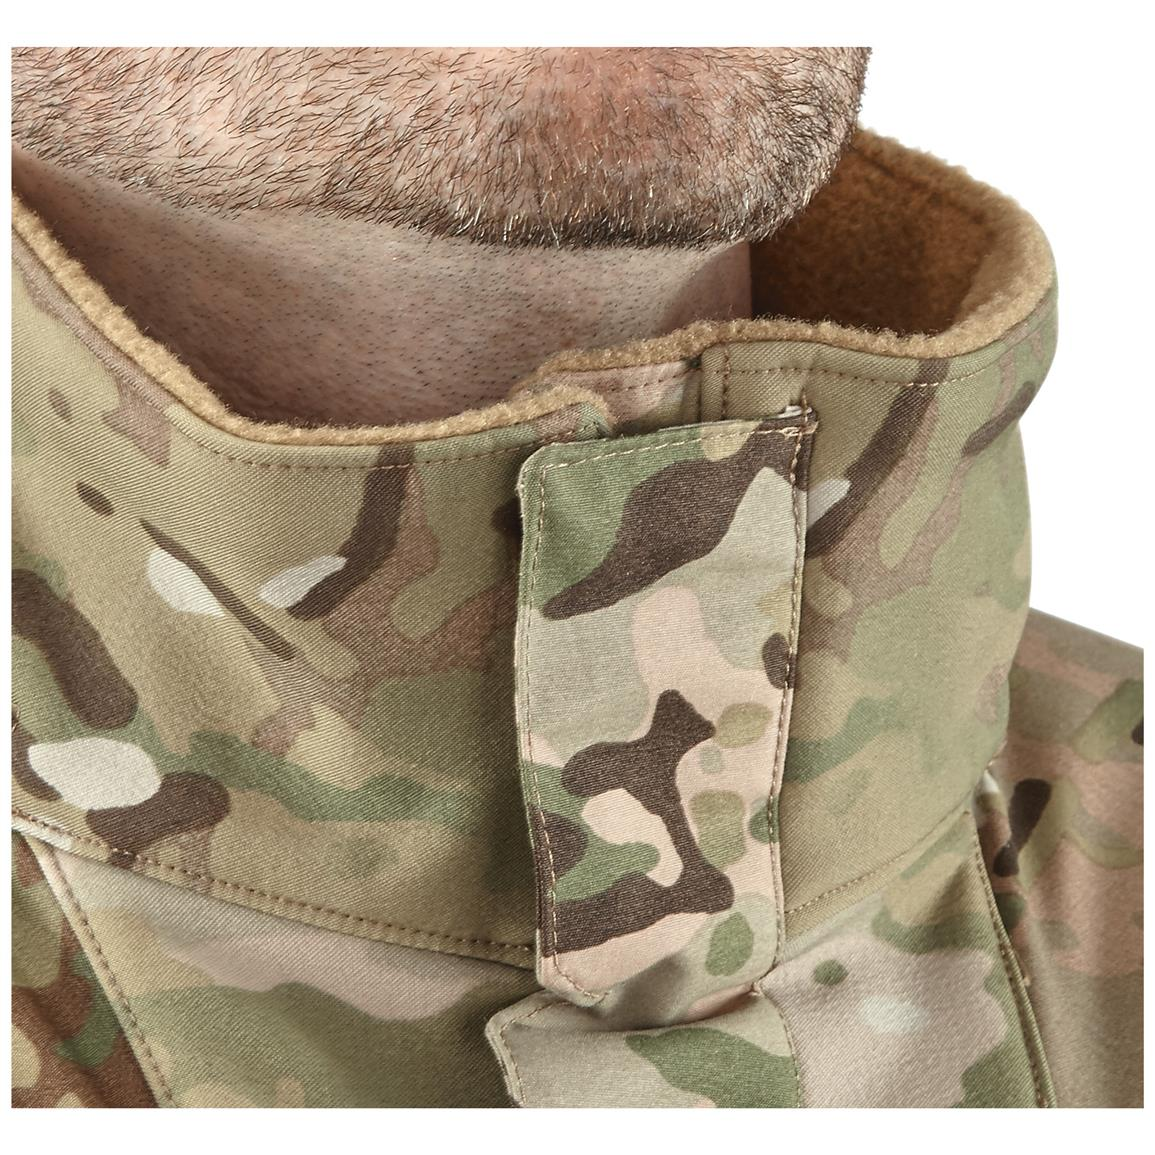 Ultra-durable 3-layer GORE-TEX military fabric